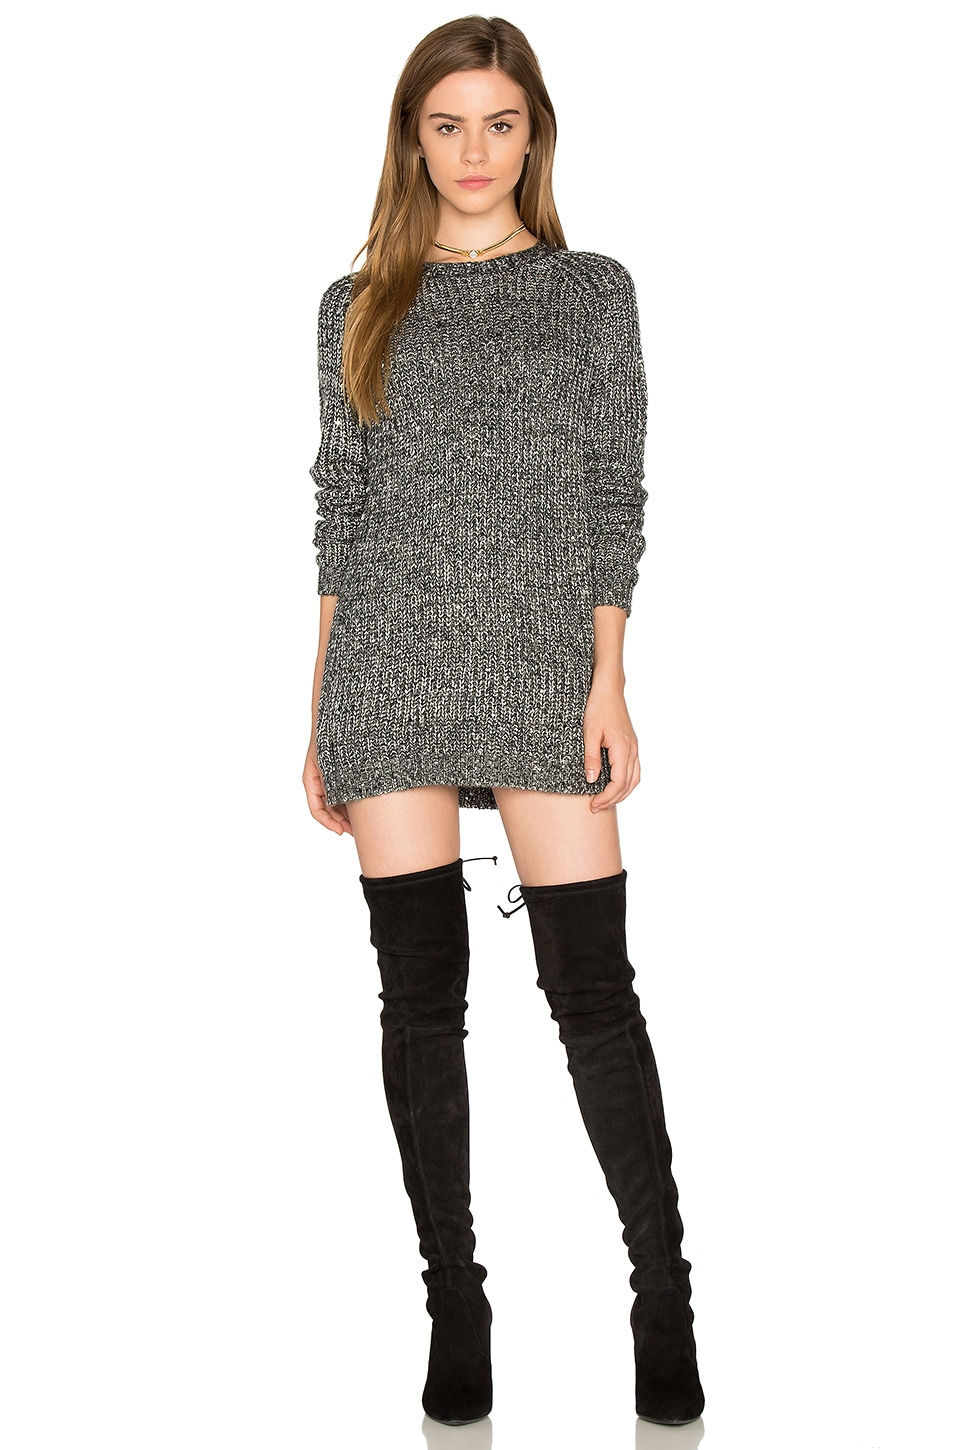 BB Dakota Brighton Sweater in Black